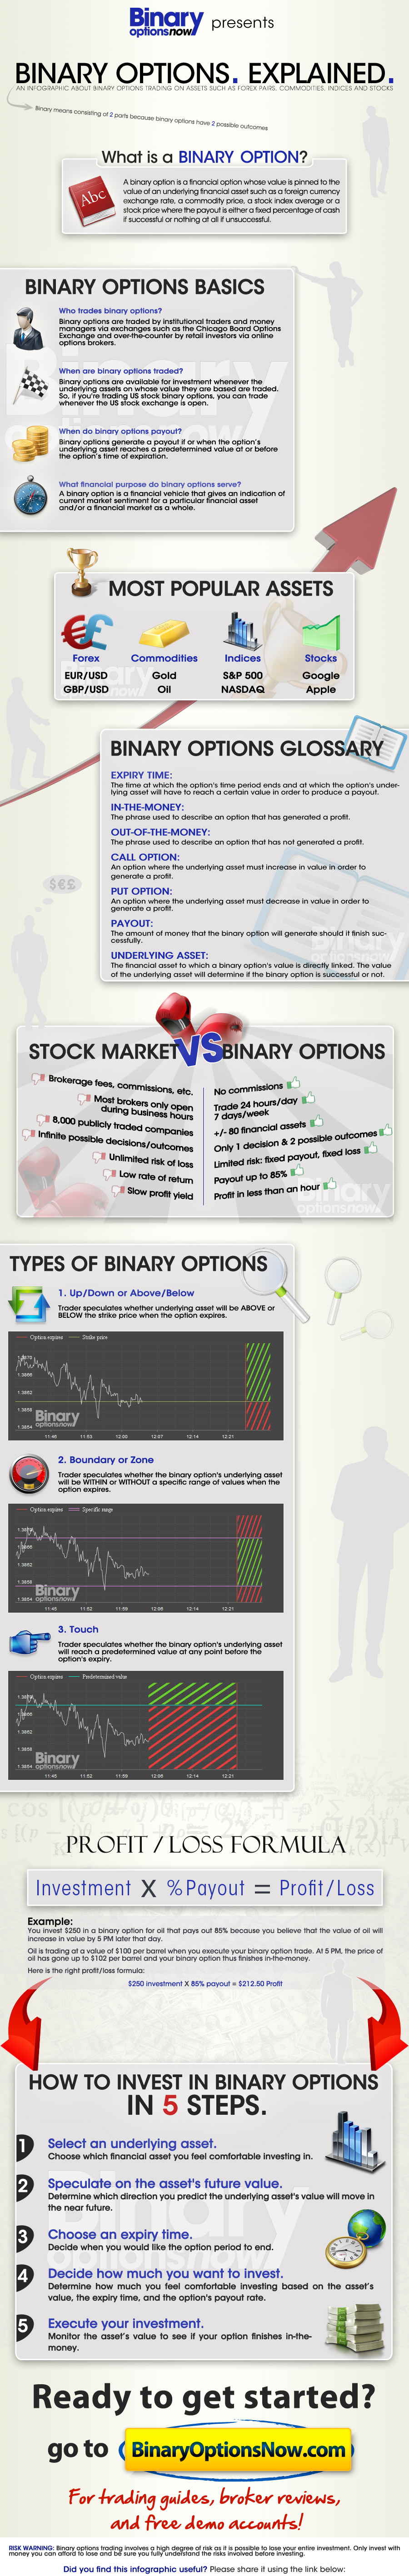 Binary options trading explained